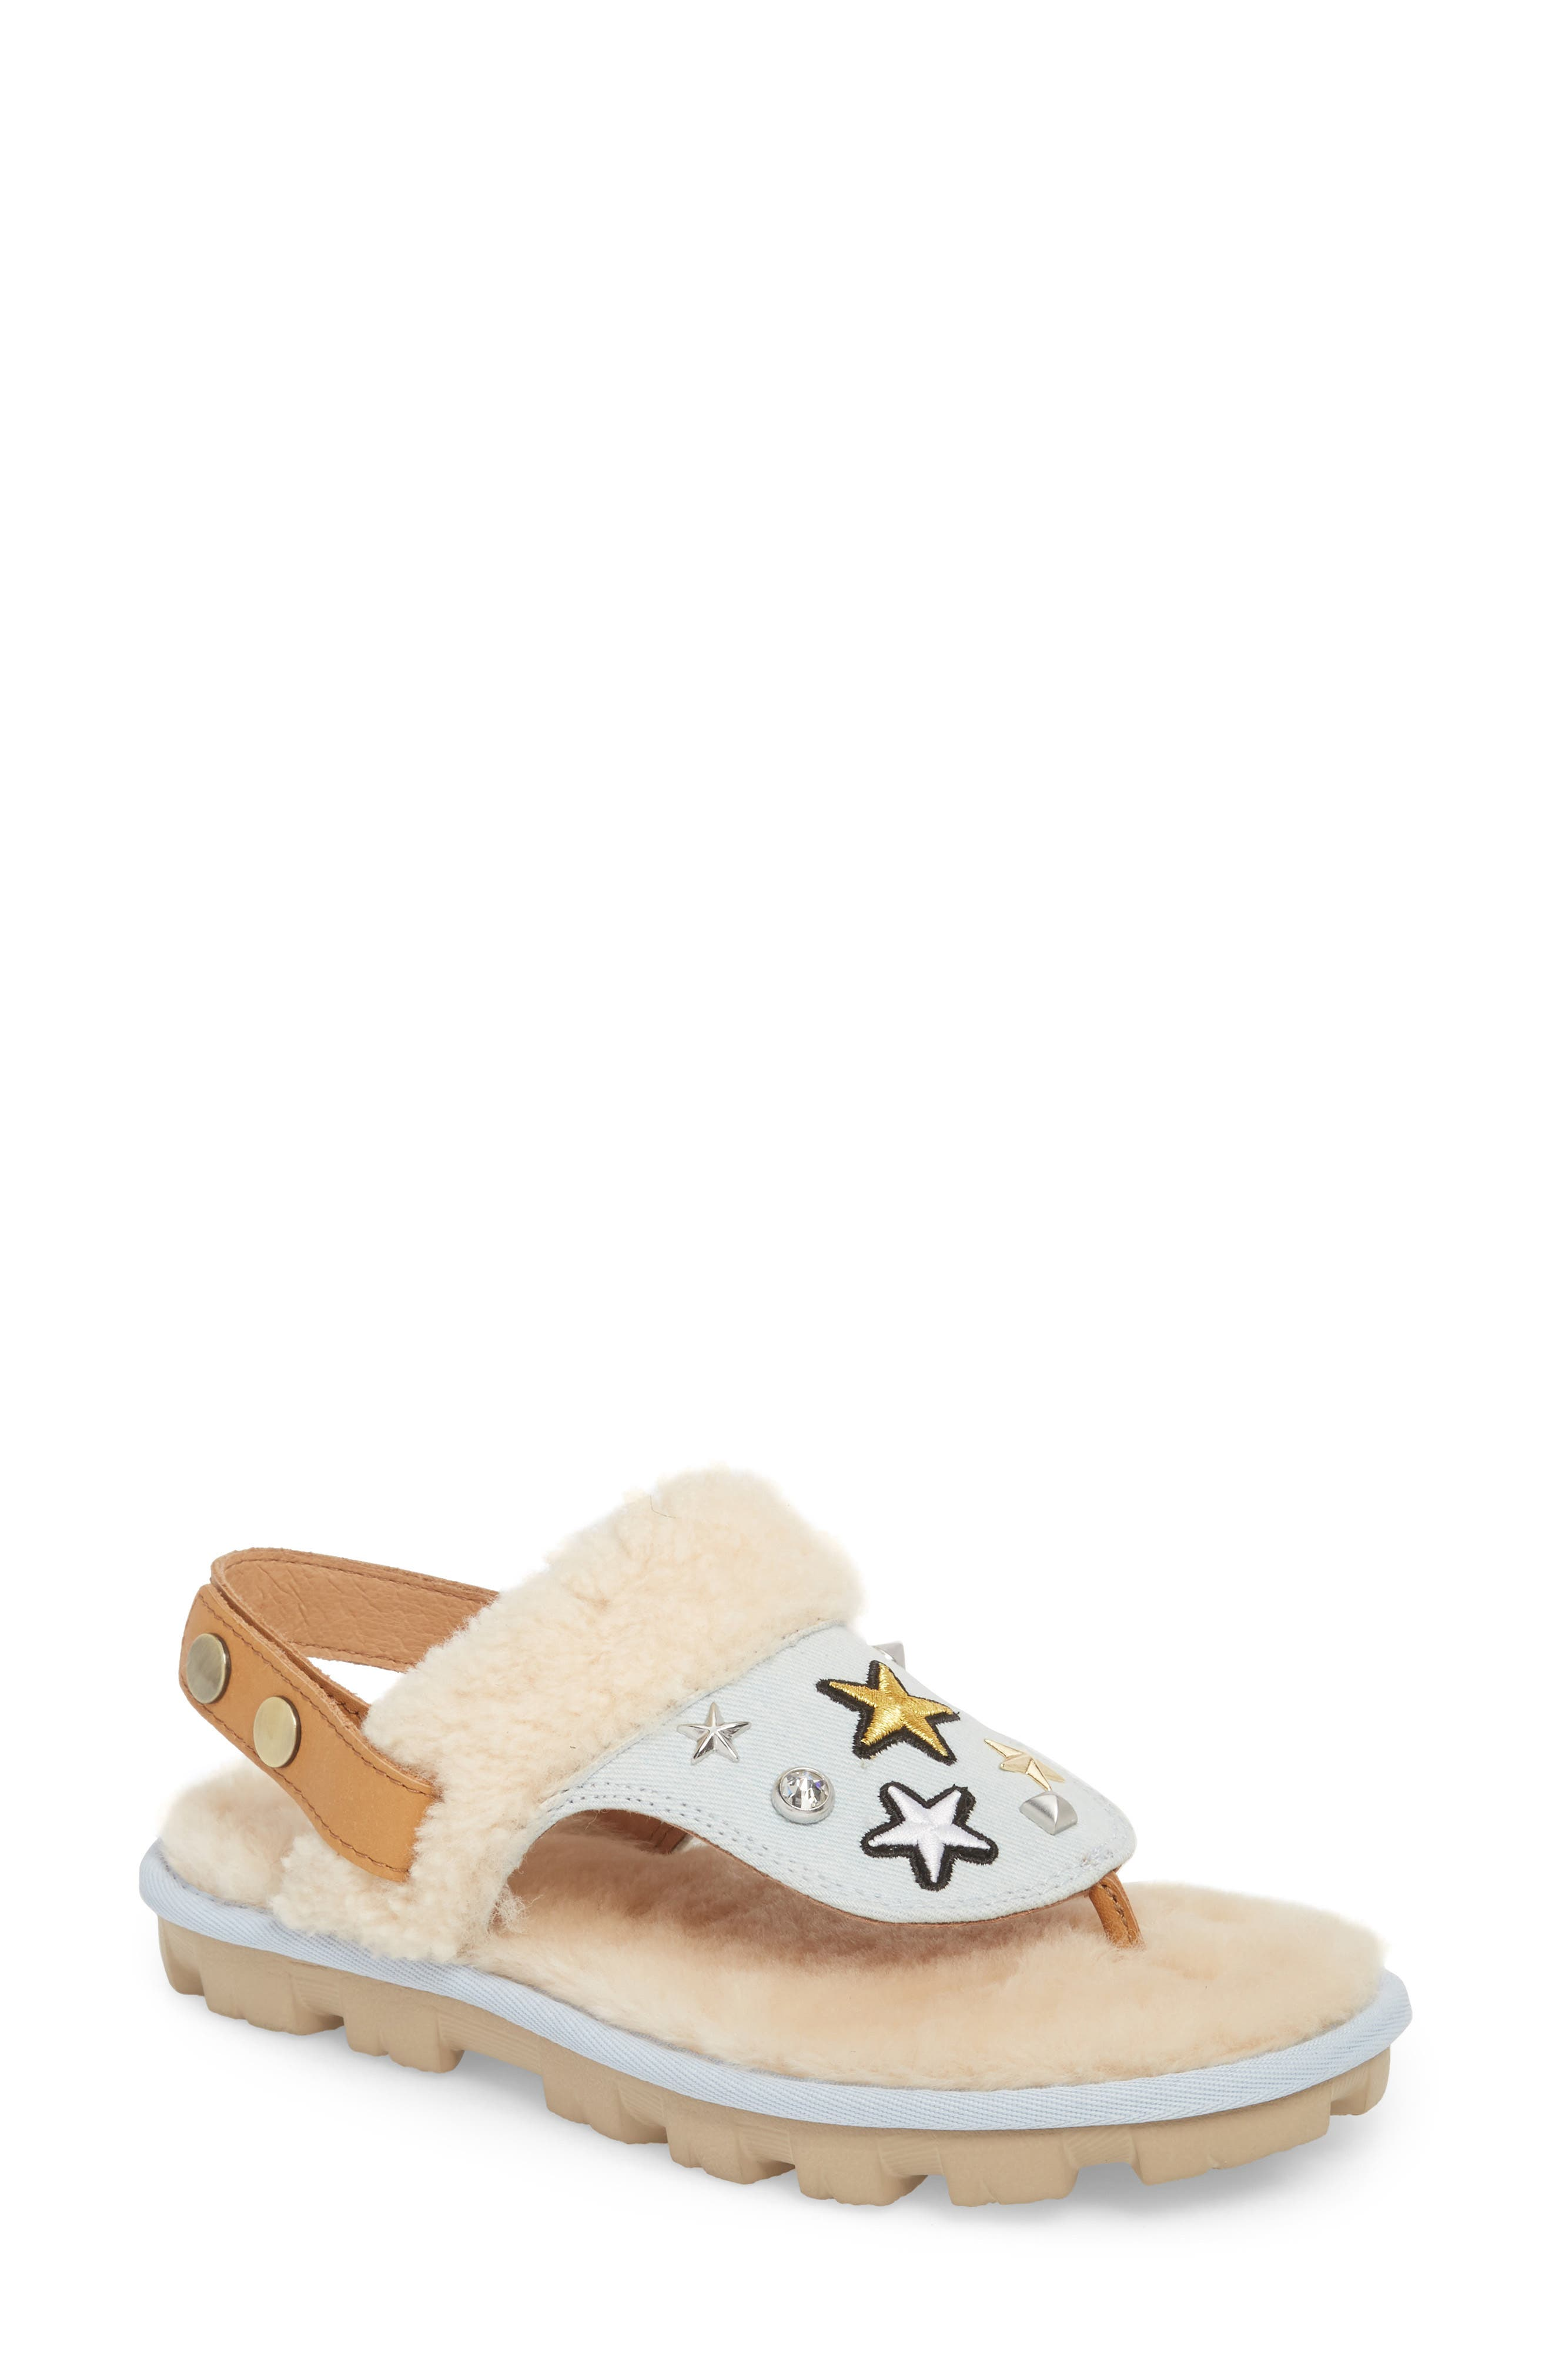 Patch It Slingback Sandal with Genuine Shearling Trim,                             Main thumbnail 1, color,                             BLEACH DENIM